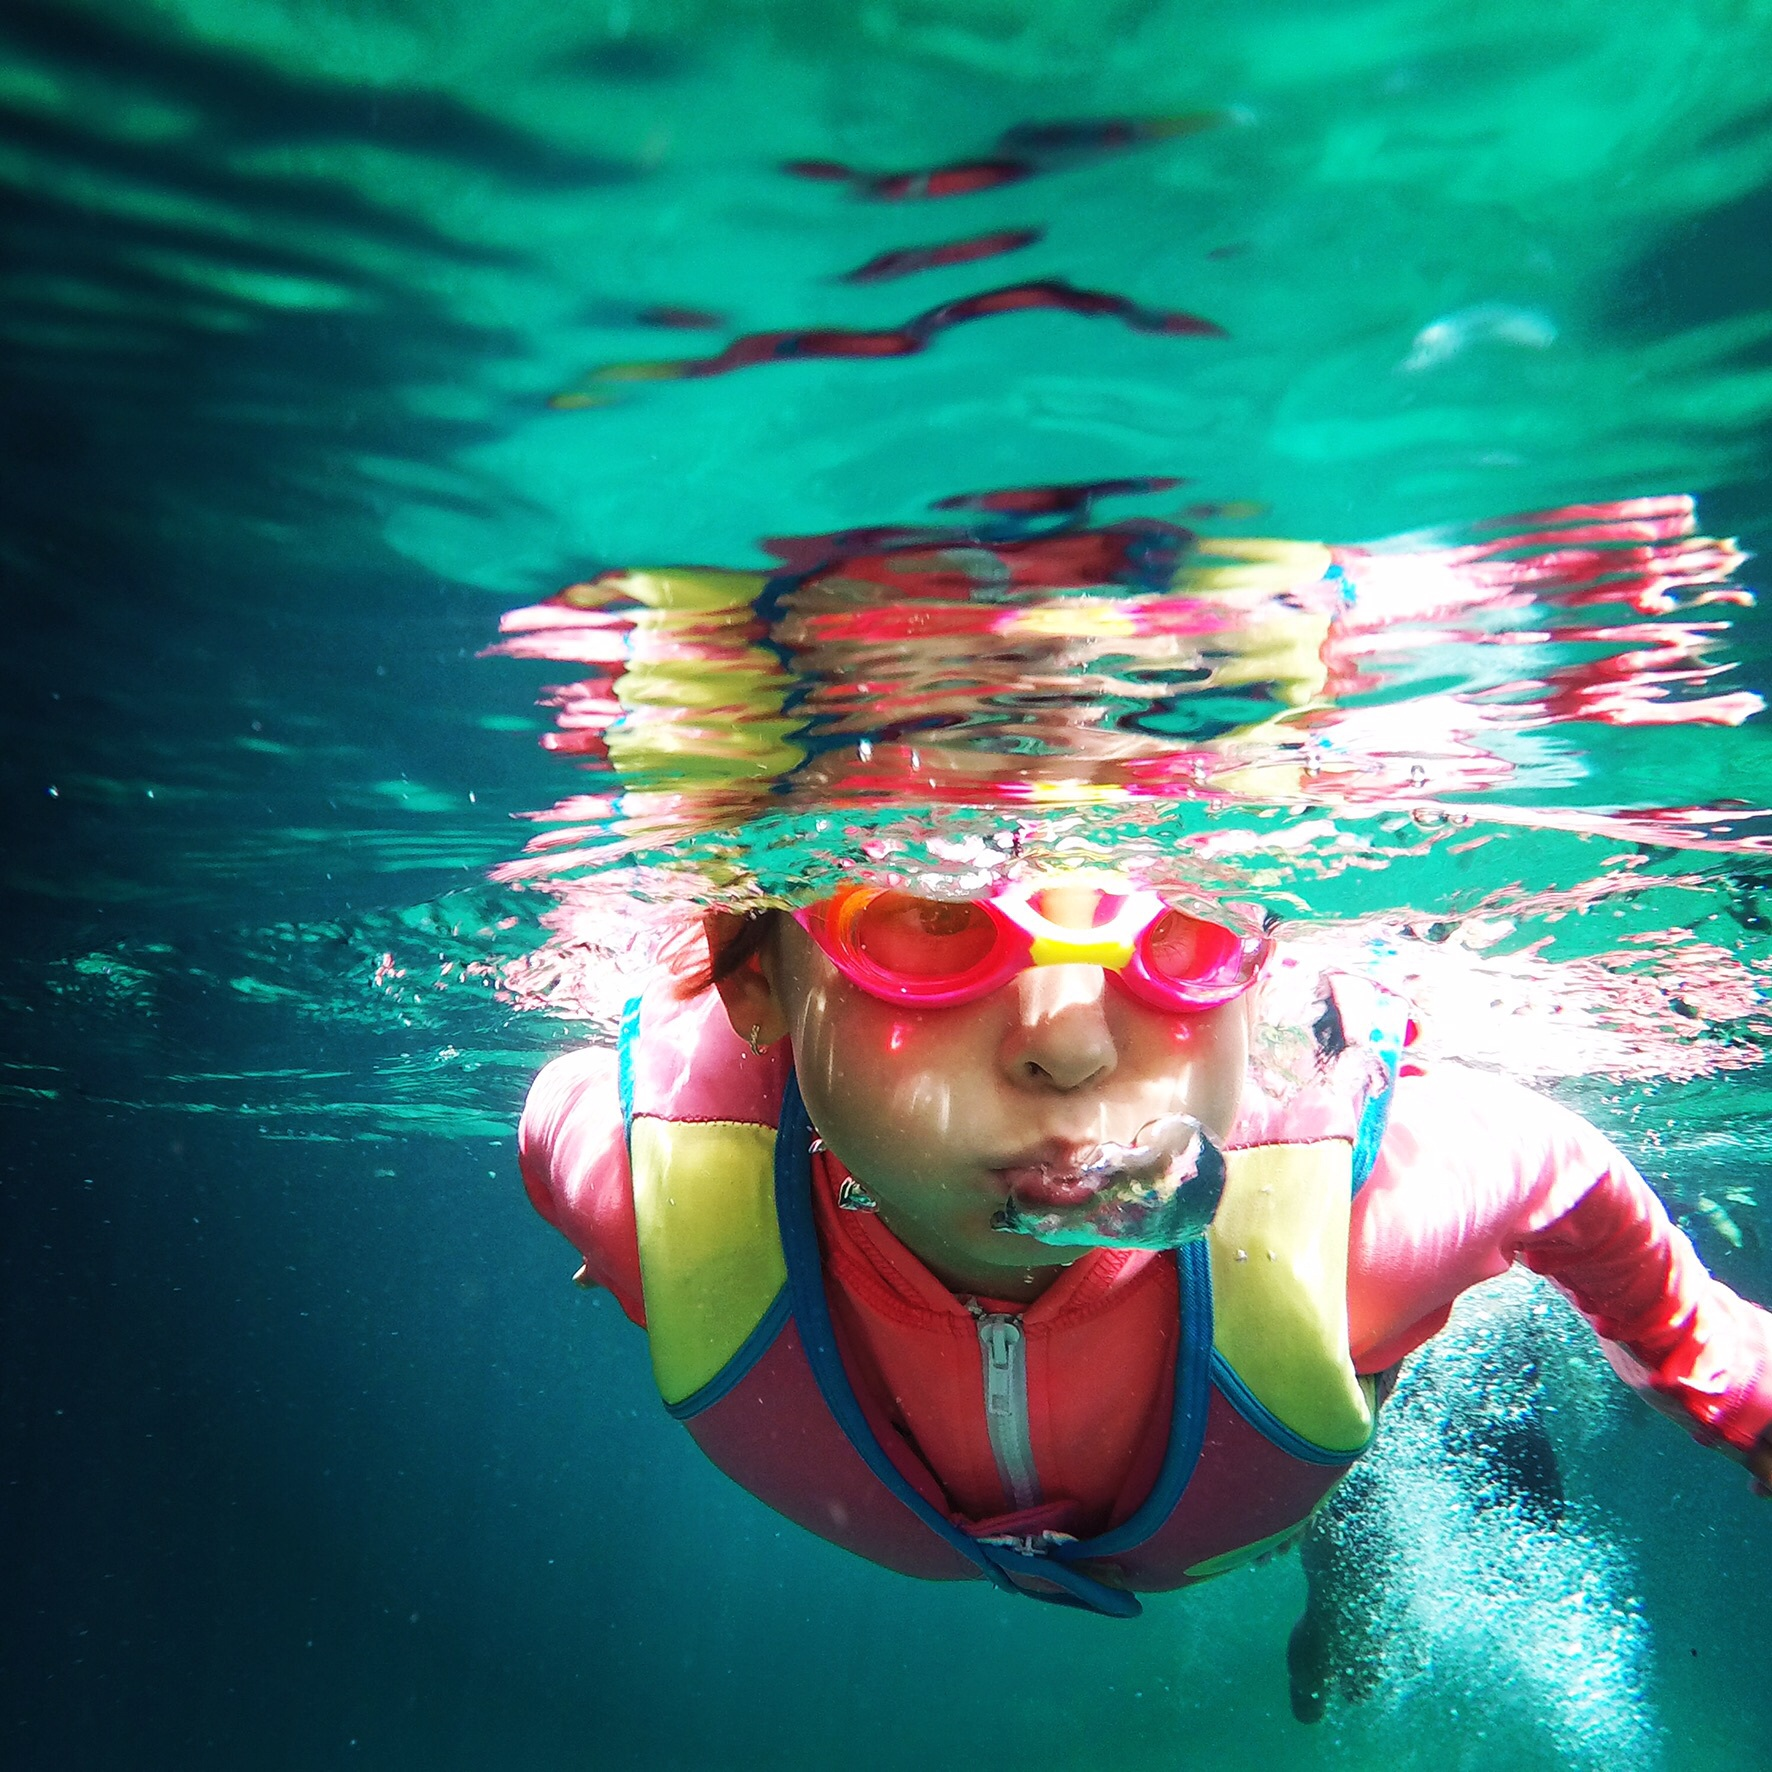 1 term of swimming lessons - Donate £40